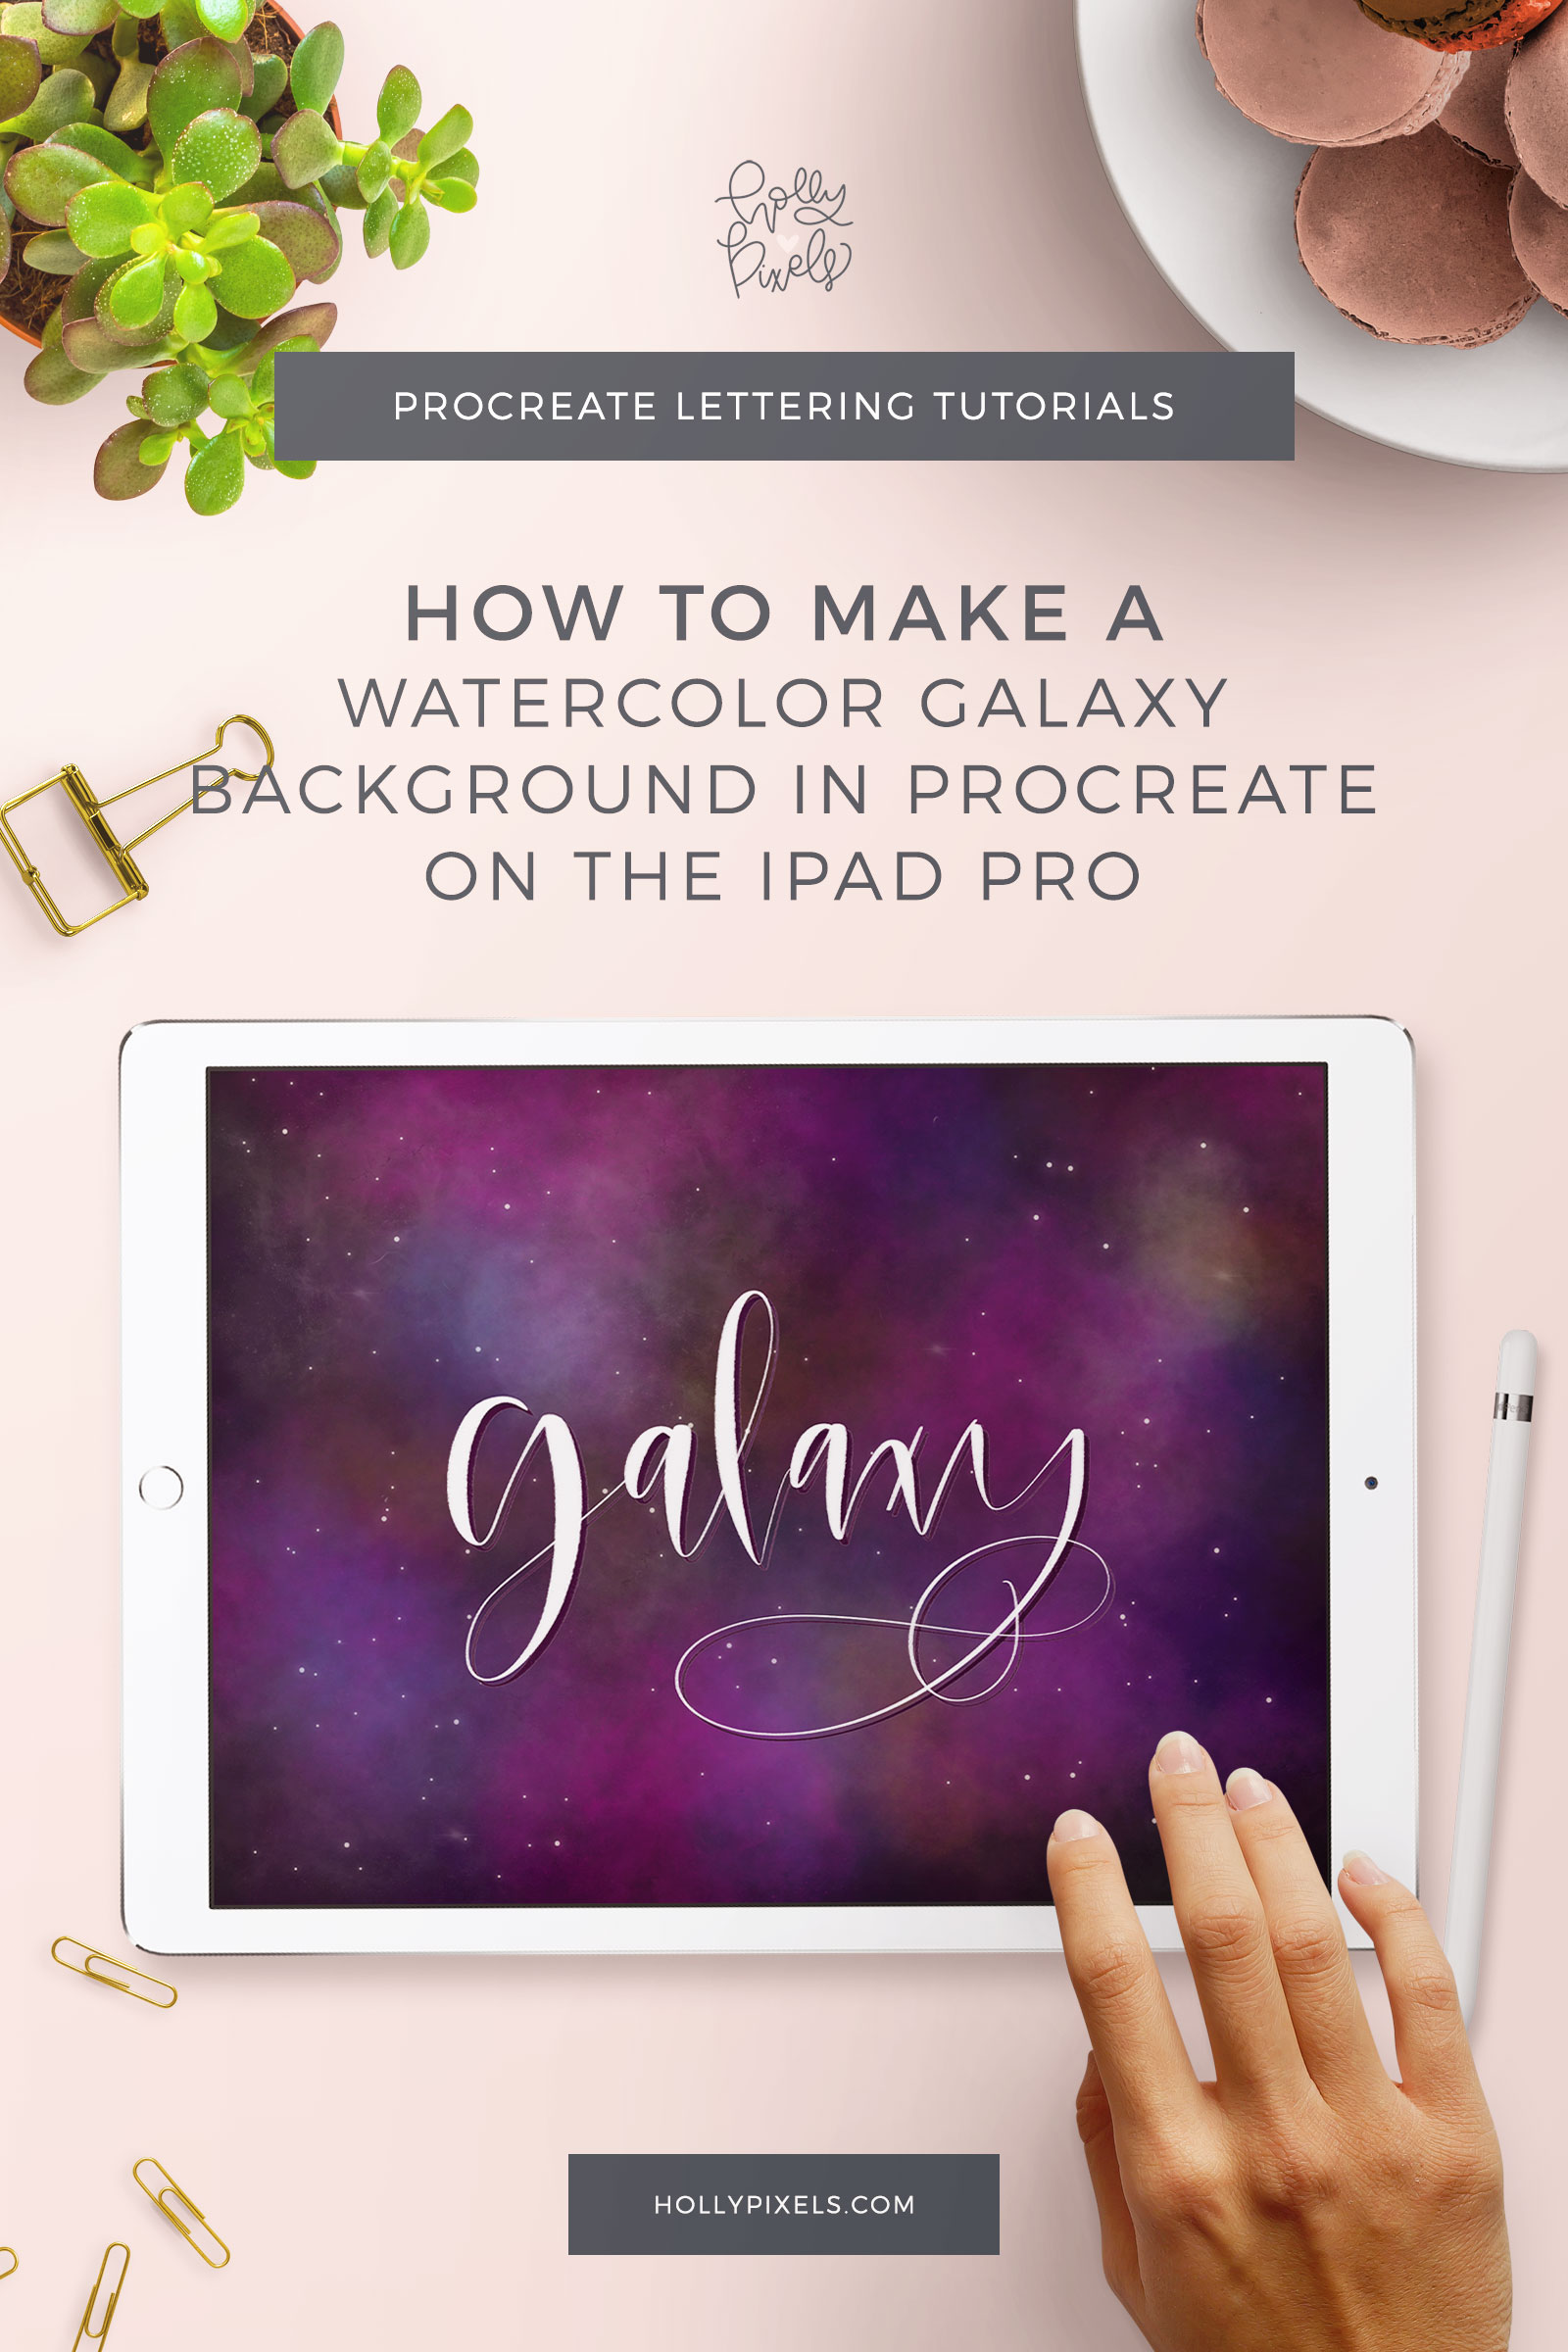 I'm obsessed with Galaxy backgrounds and art. A while back, I did a watercolor print of a galaxy in a jar, so I wanted to recreate the background idea using Procreate. Let's learn how to make a galaxy watercolor background with Procreate for brush lettering in this week's tutorial.